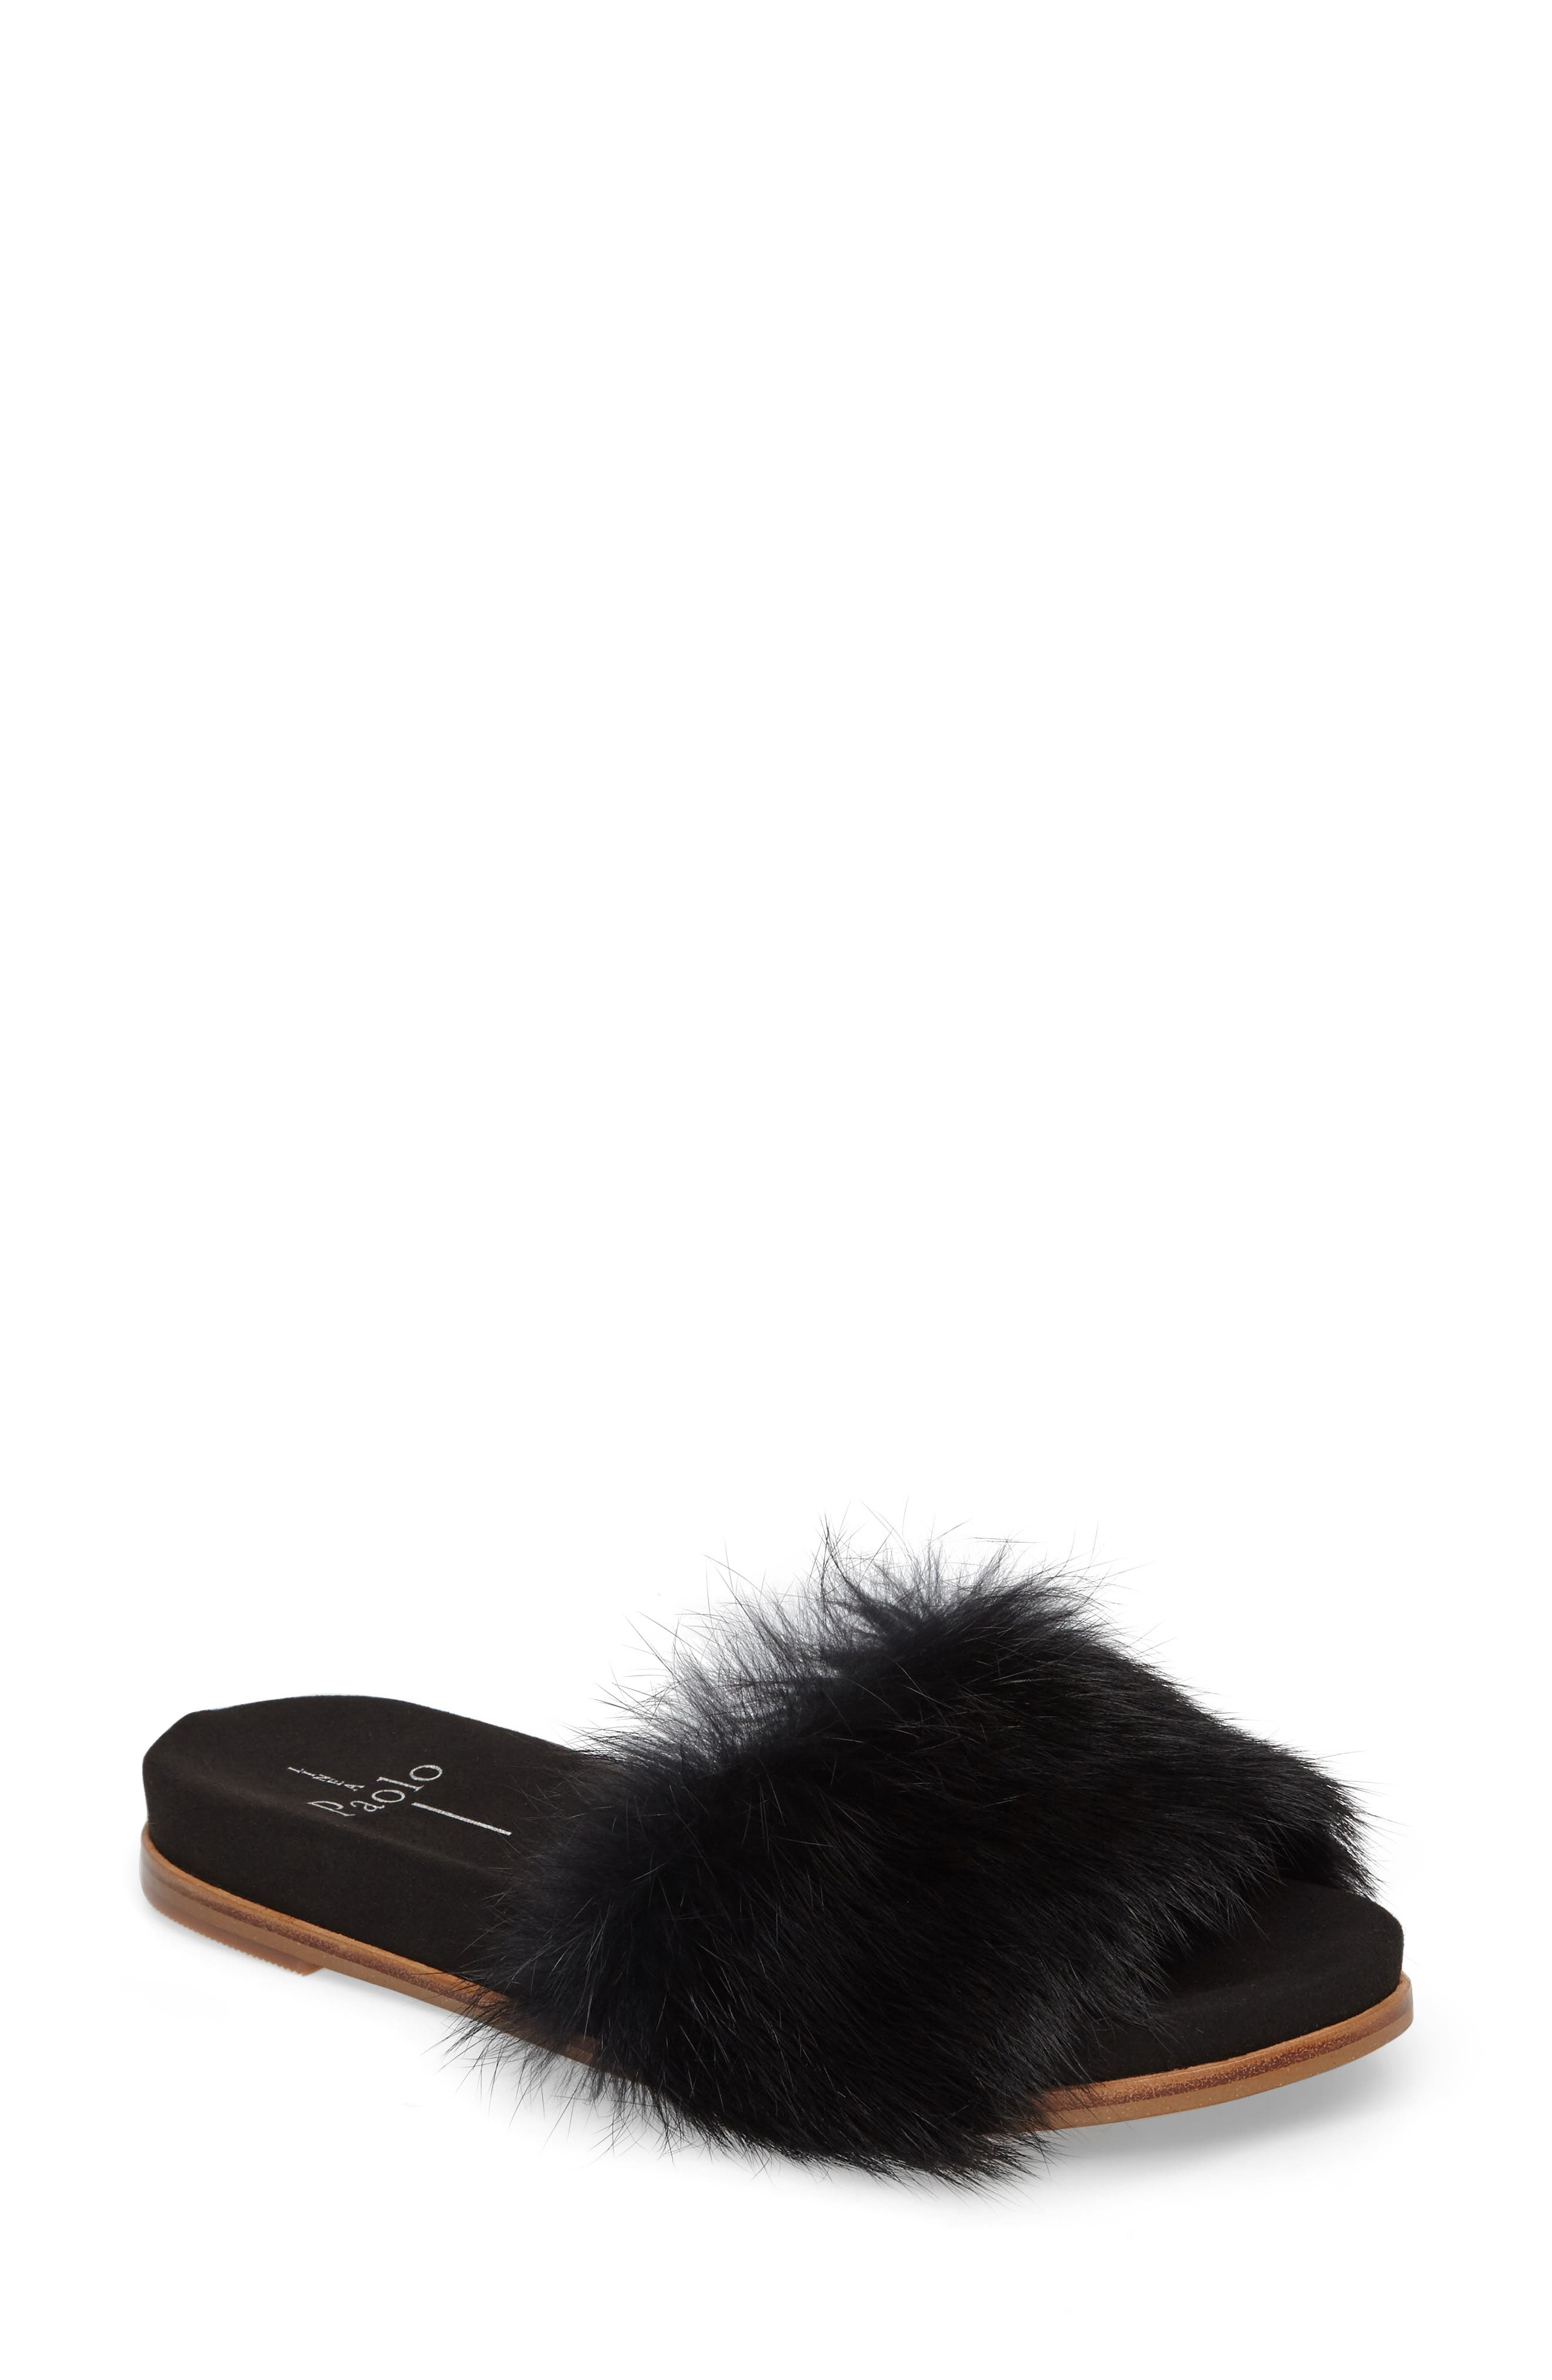 Main Image - Linea Paolo Lisa Genuine Rabbit Fur Slide Sandal (Women)